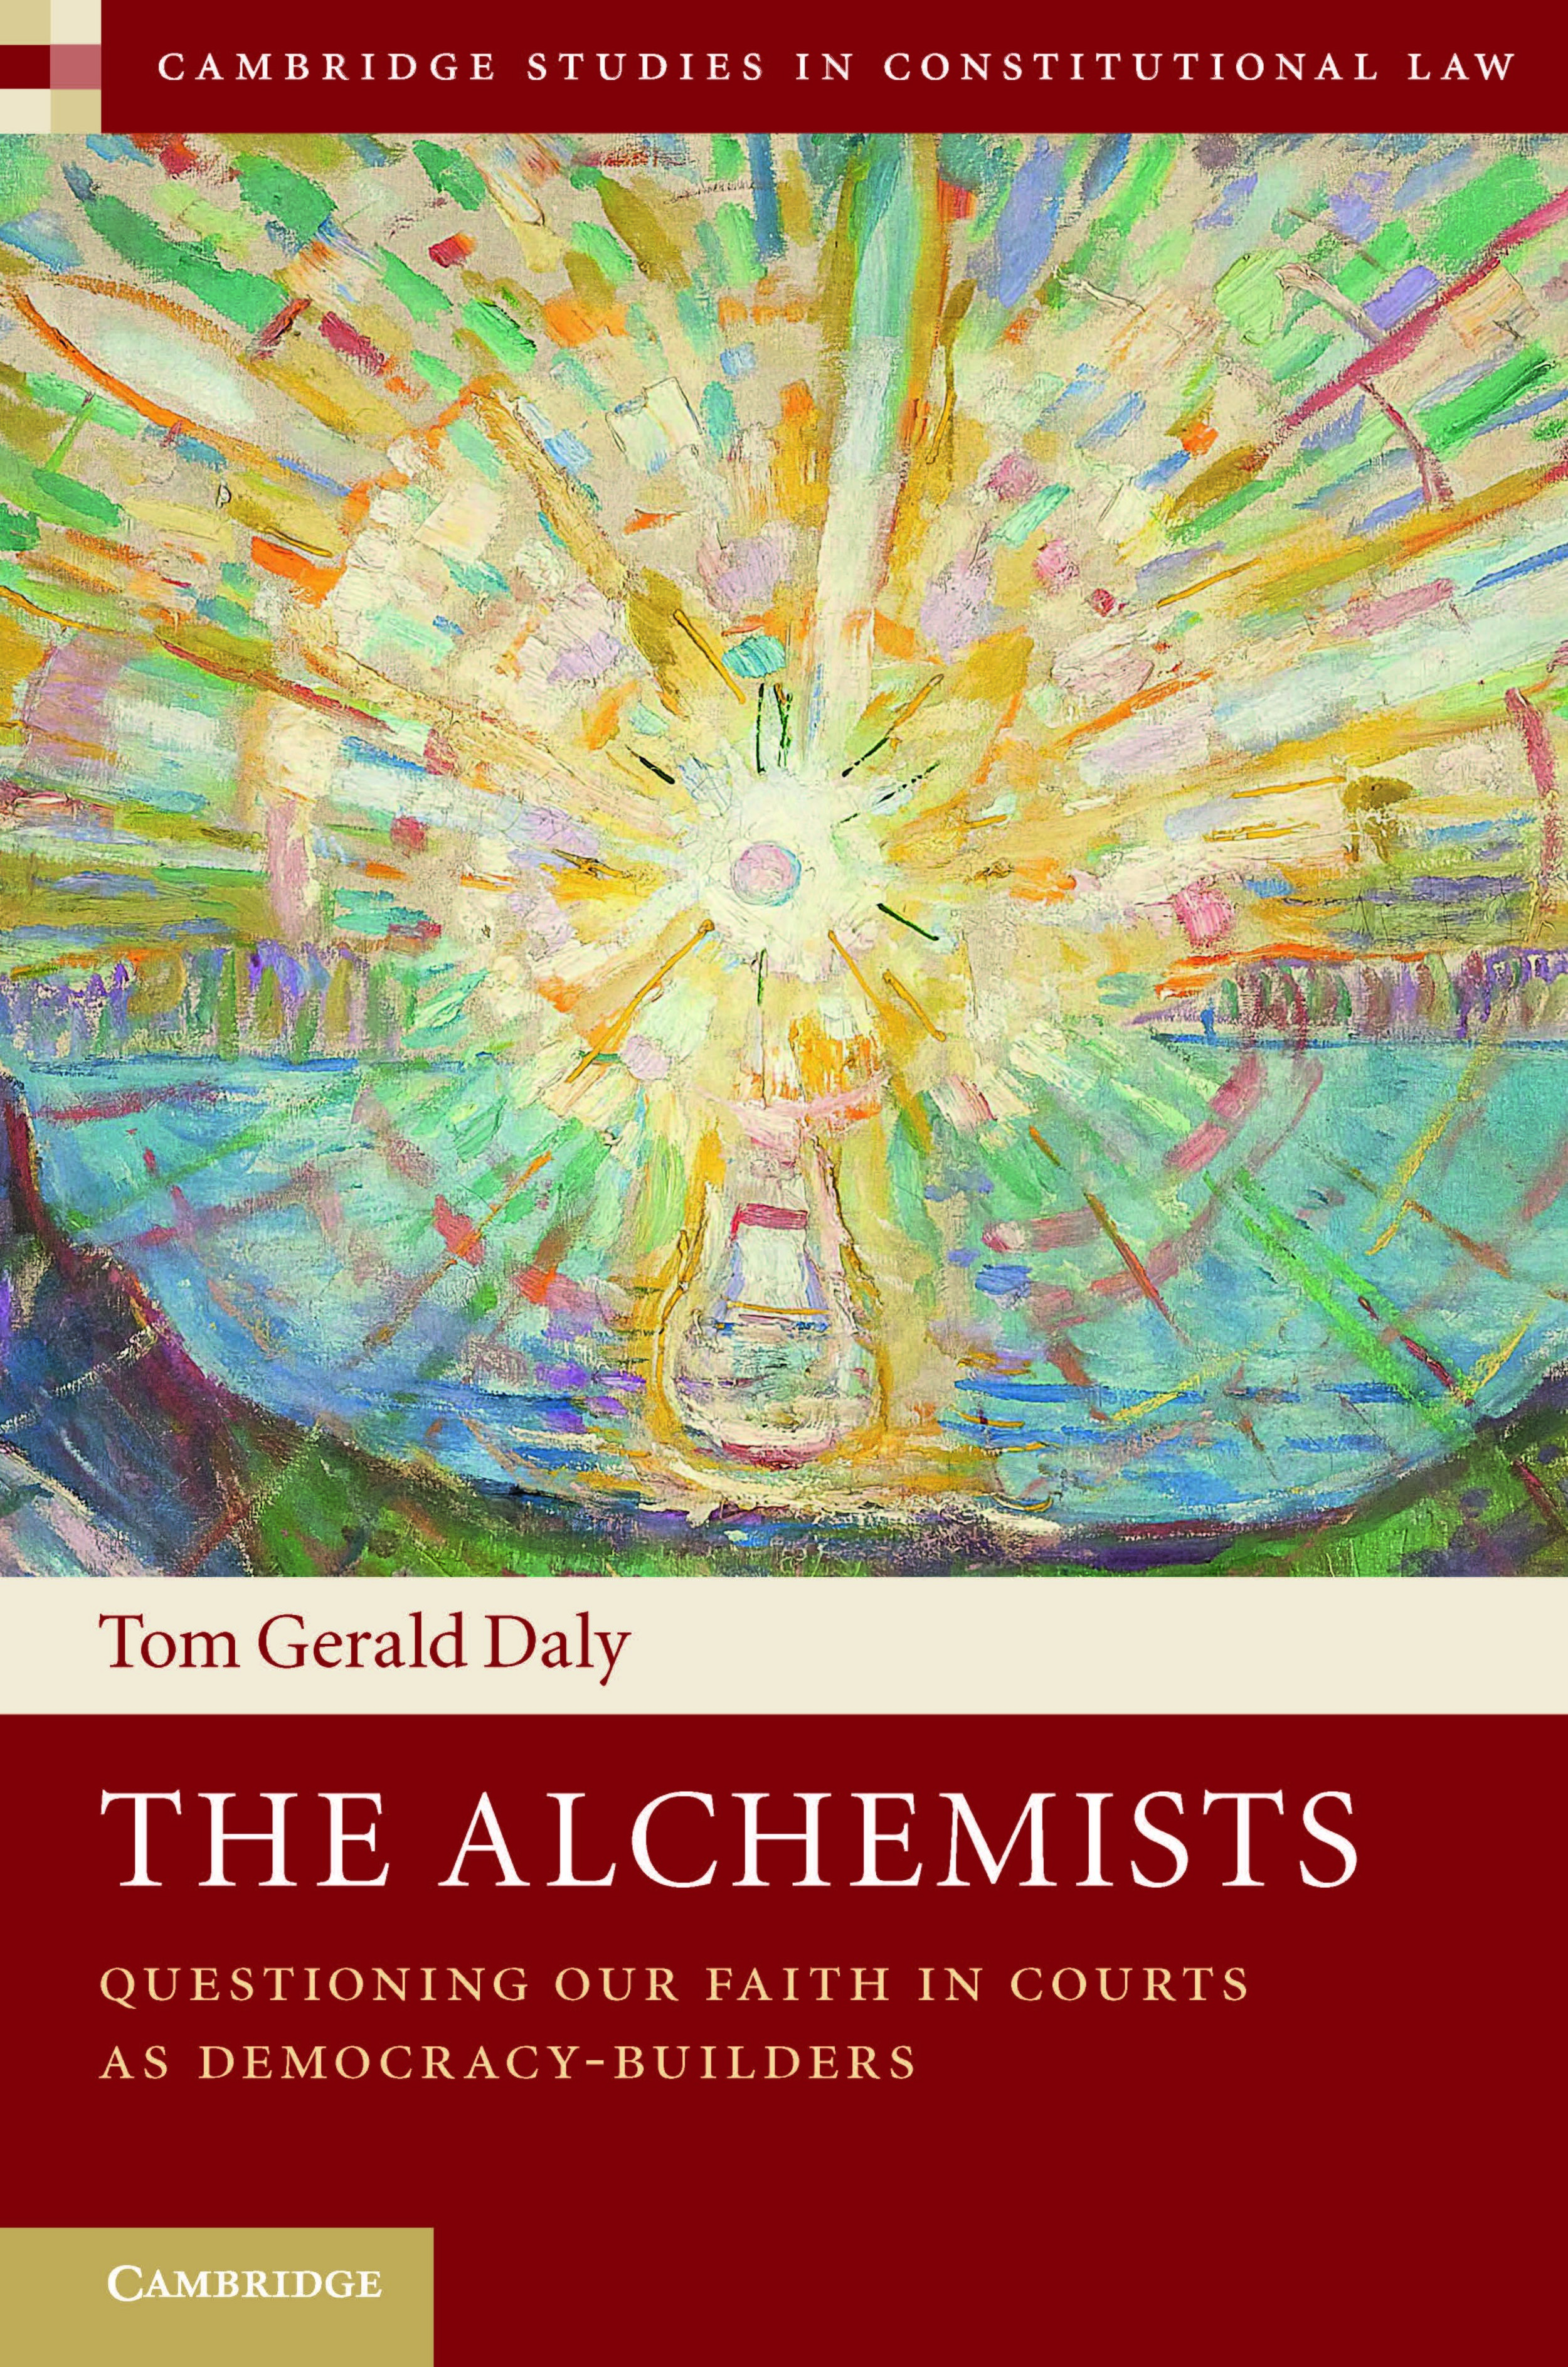 Tom Gerald Daly - The Alchemists: Questioning Our Faith in Courts as Democracy-Builders